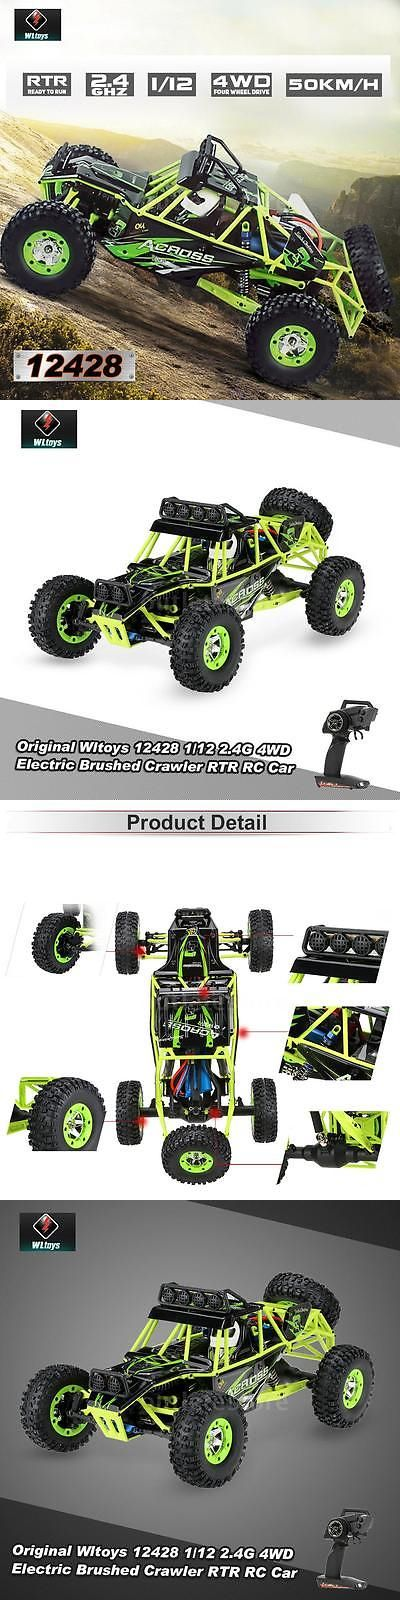 Toys And Games: Wltoys 12428 1 12 2.4G 4Wd Electric Brushed Crawler Rtr Rc Car Best Gift Usa -> BUY IT NOW ONLY: $67.14 on eBay!